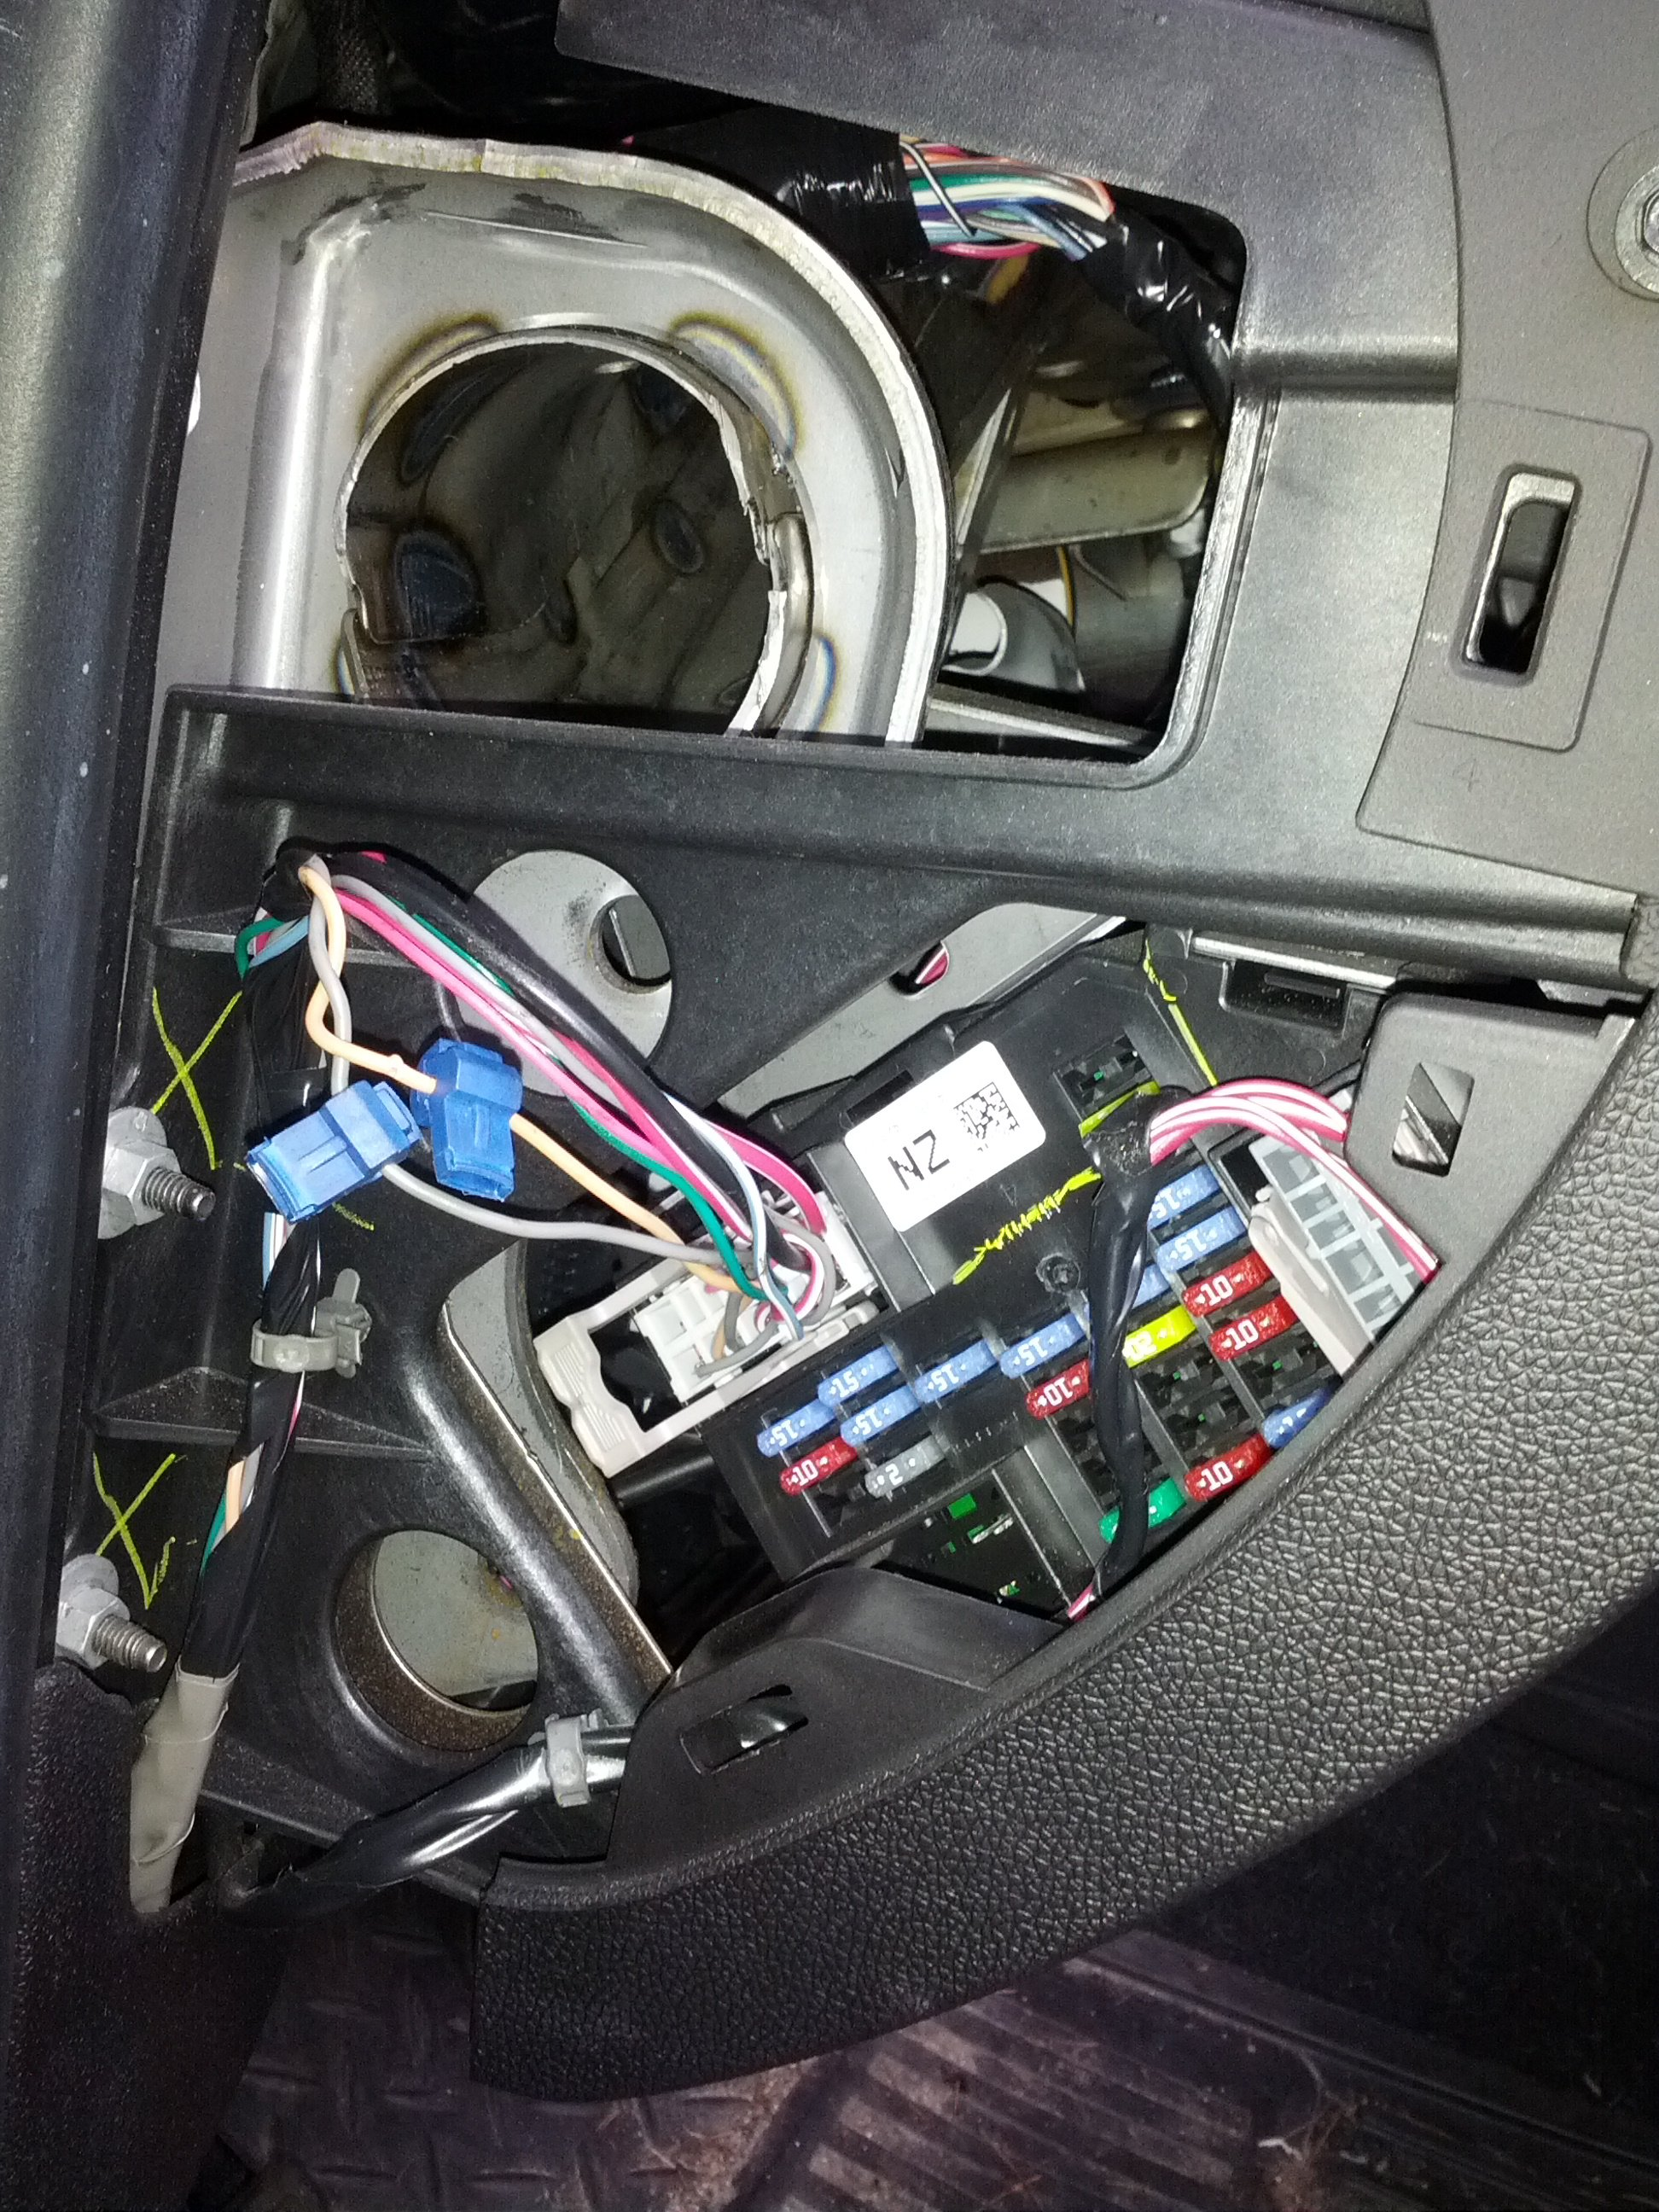 Renault Megane Steering Lock Wiring Diagram : I m looking for a wiring diagram the fuse box on